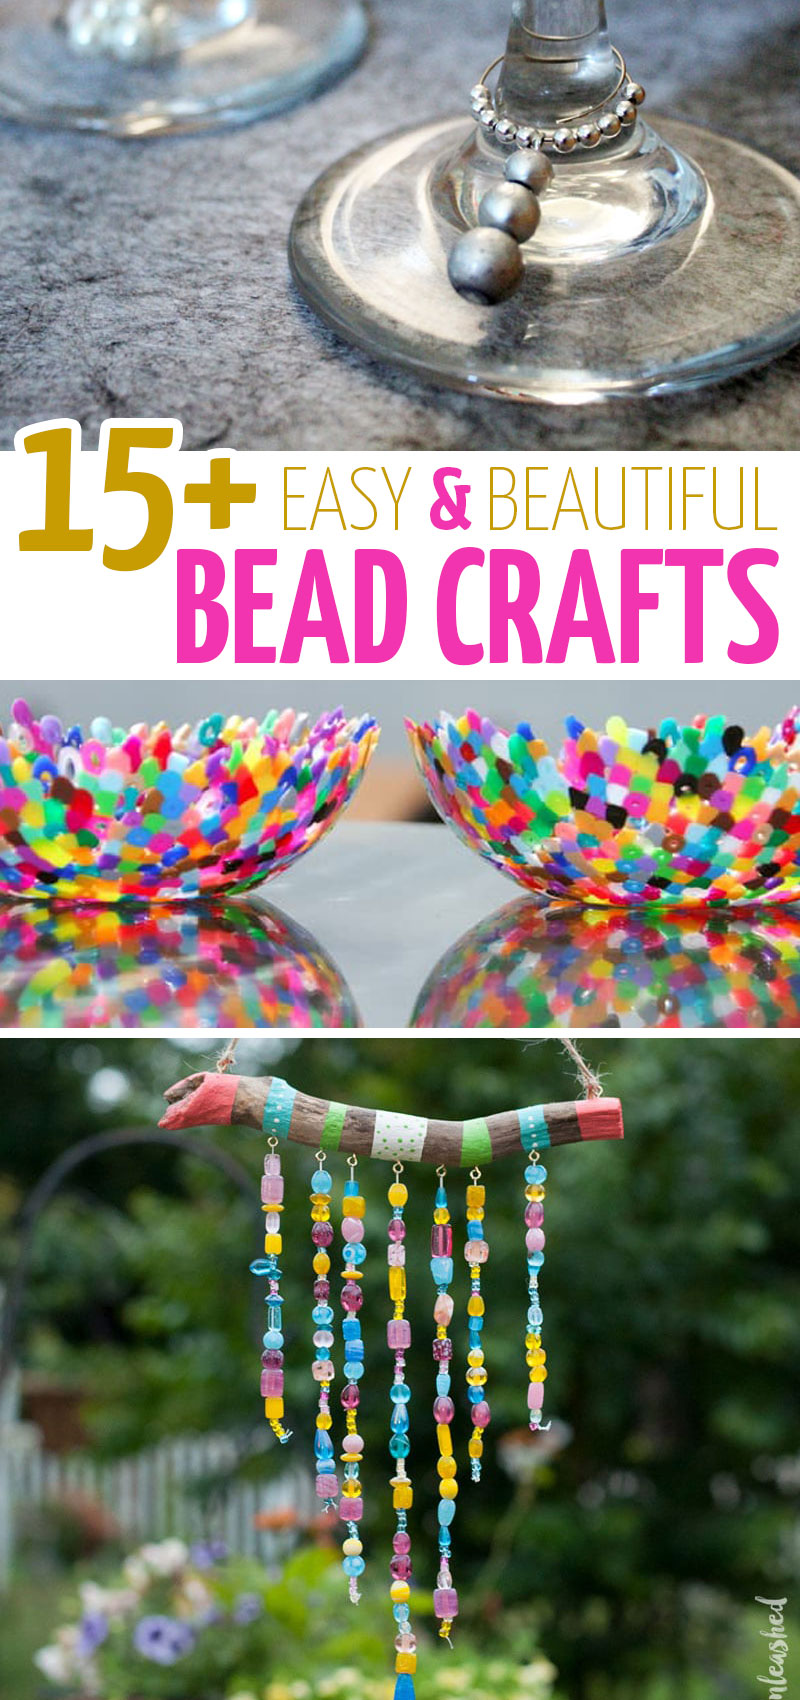 Bead Crafts 17 Ideas For Home Decor Jewelry Kids And More